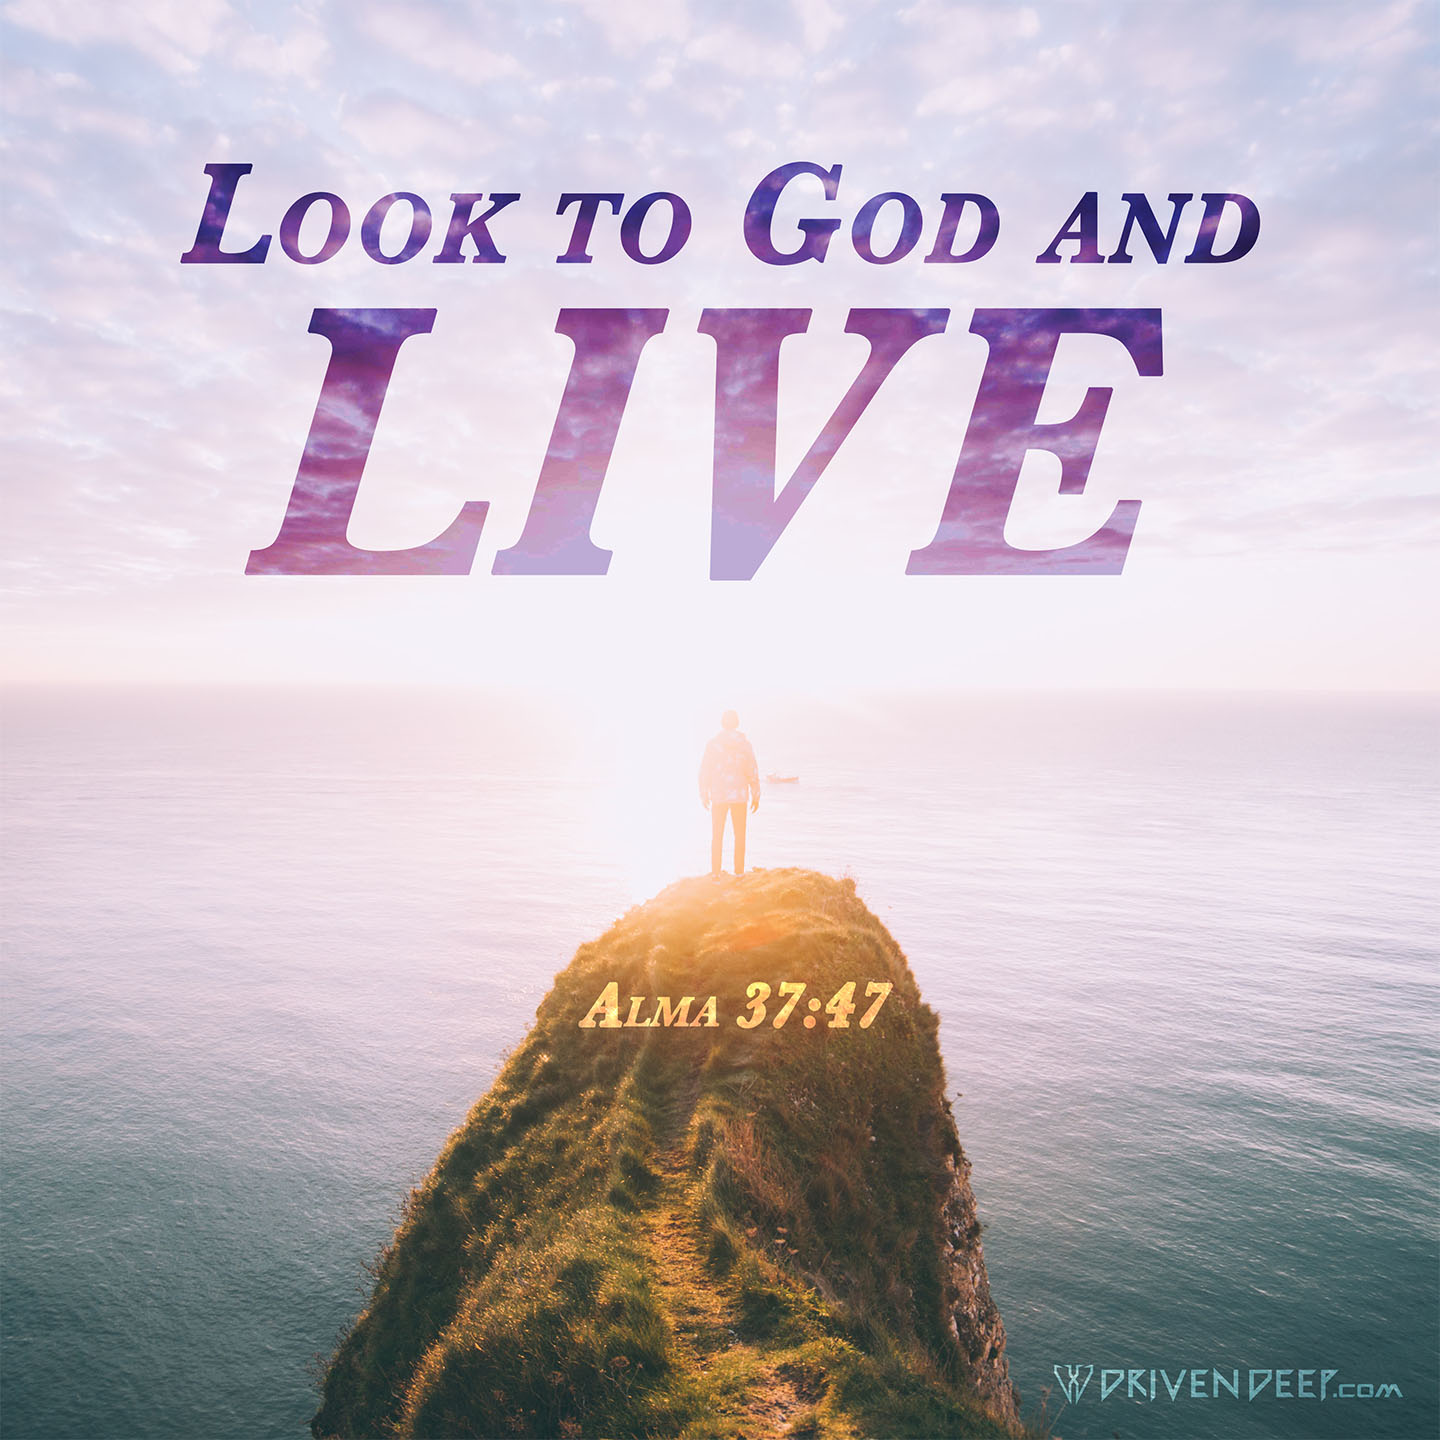 Look to God and Live - Small.jpg